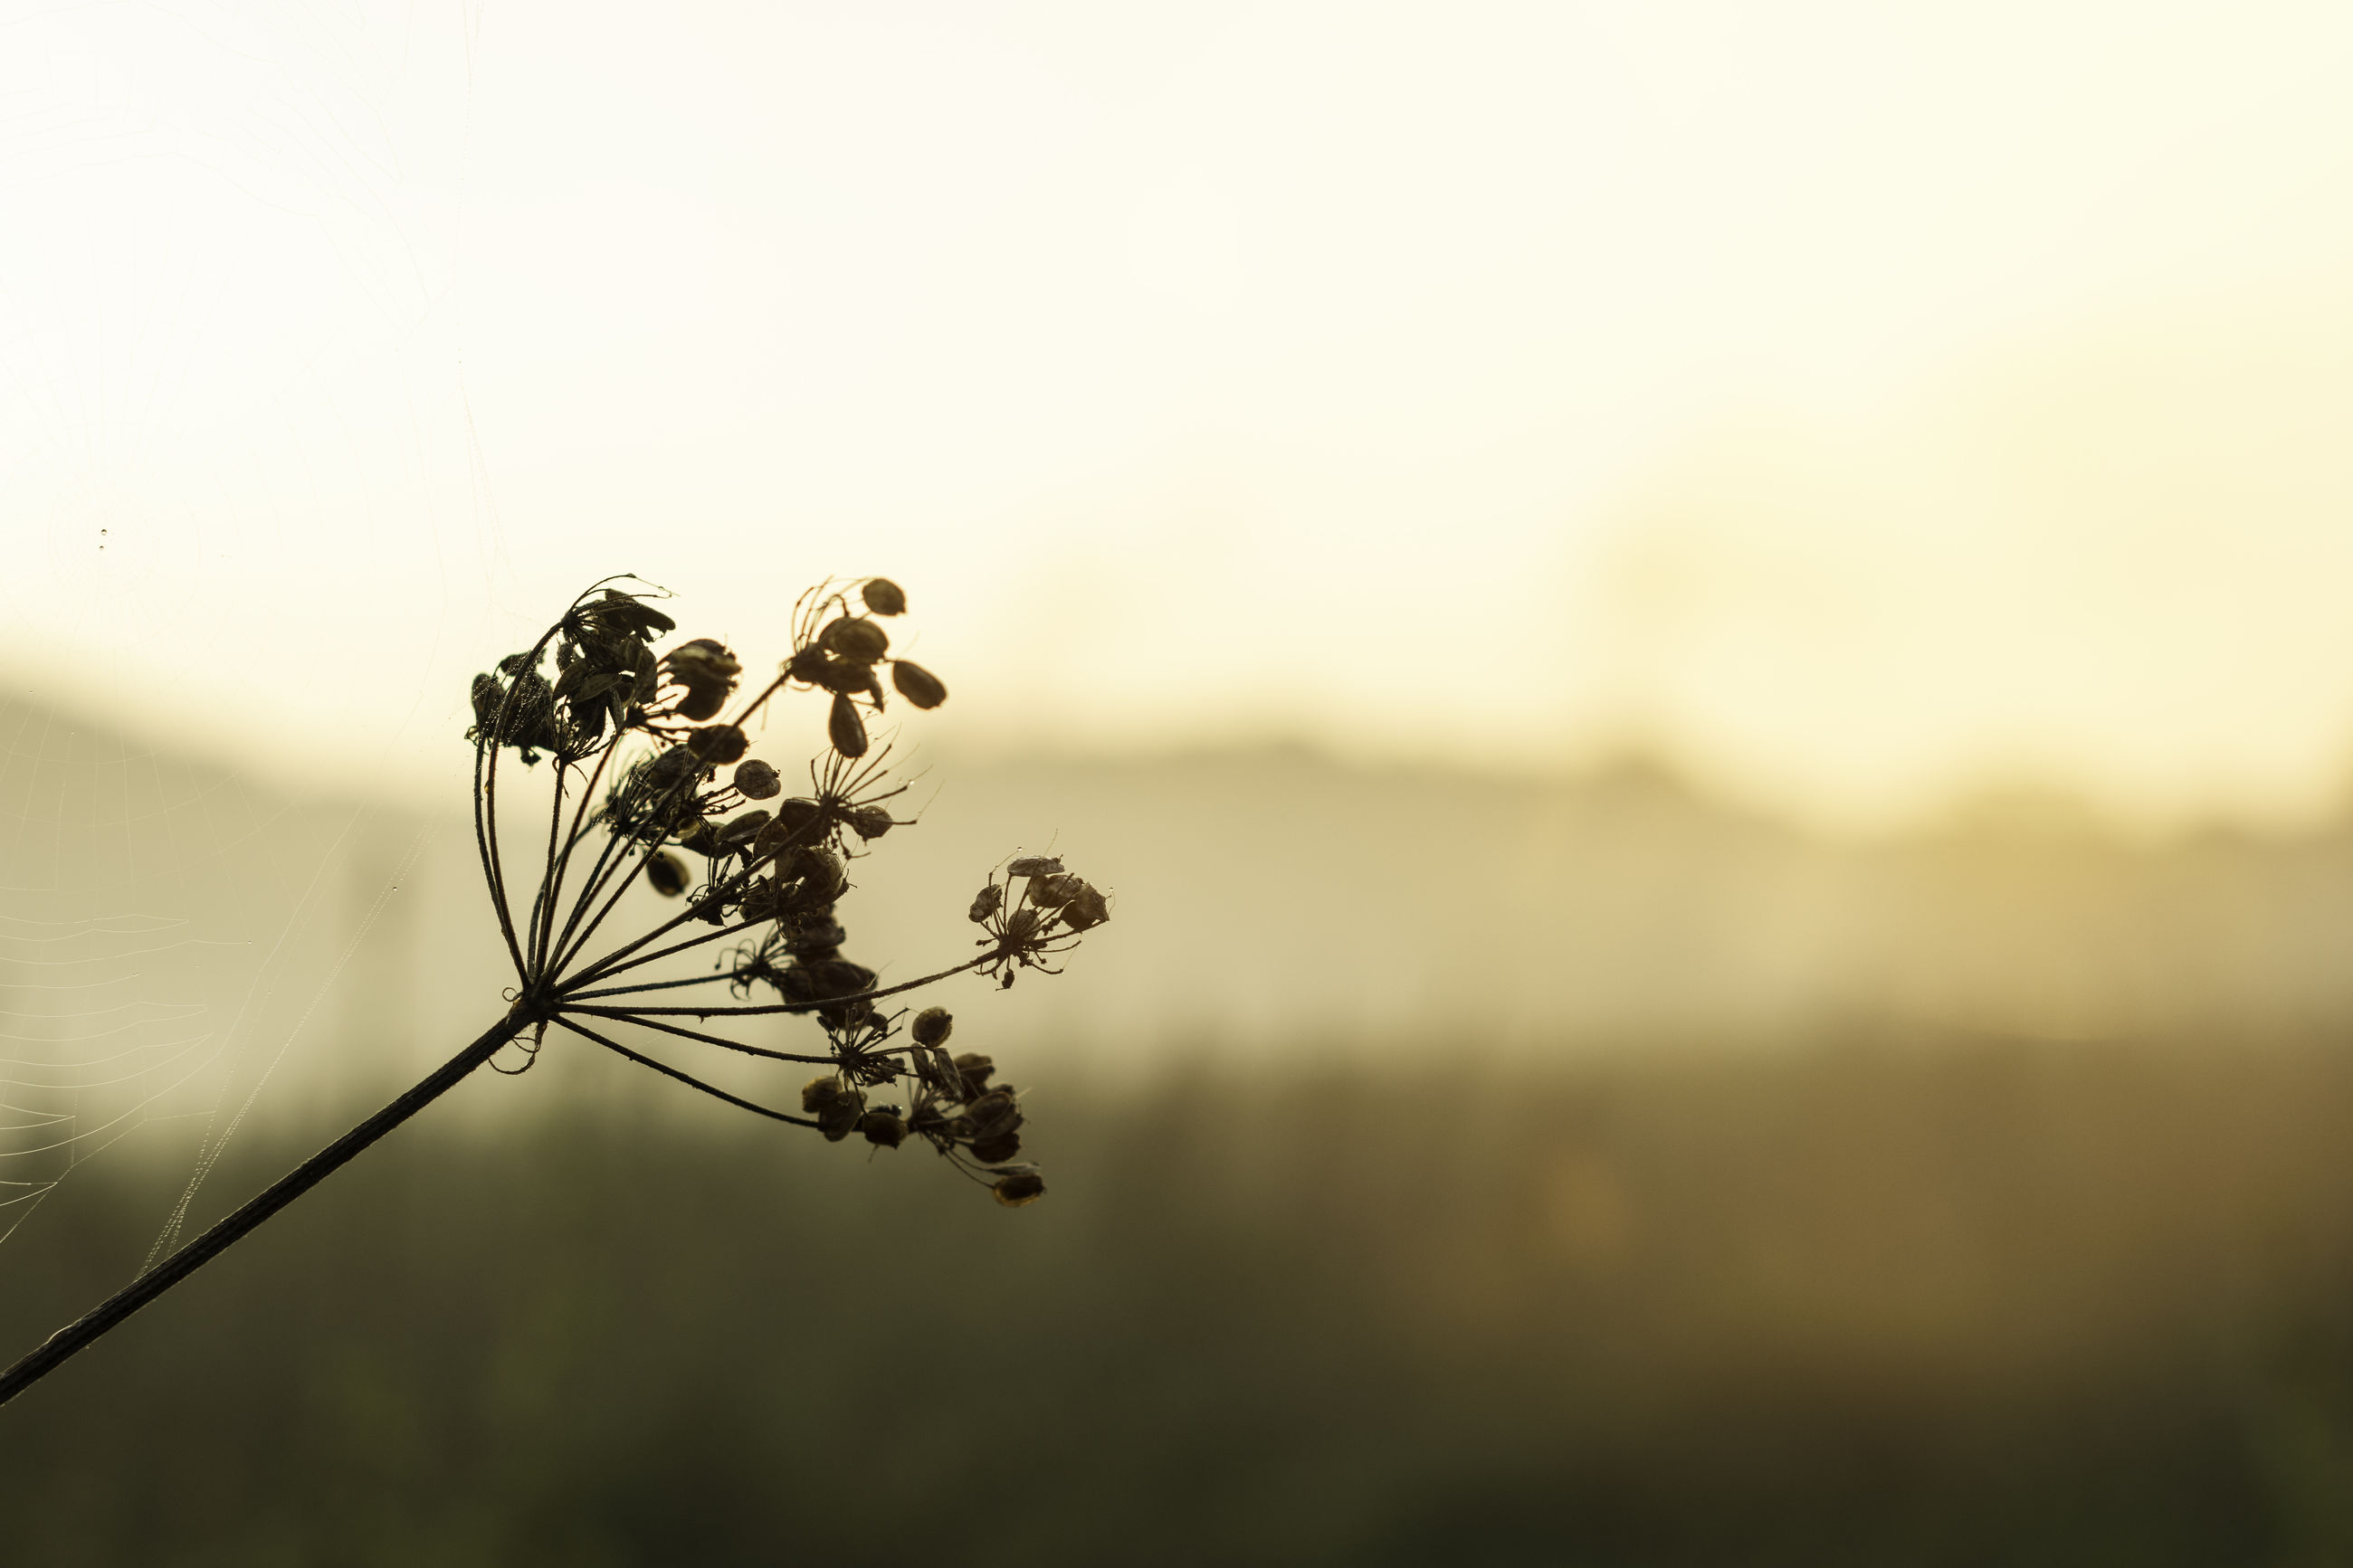 nature, no people, plant, close-up, beauty in nature, flower, fragility, outdoors, day, sky